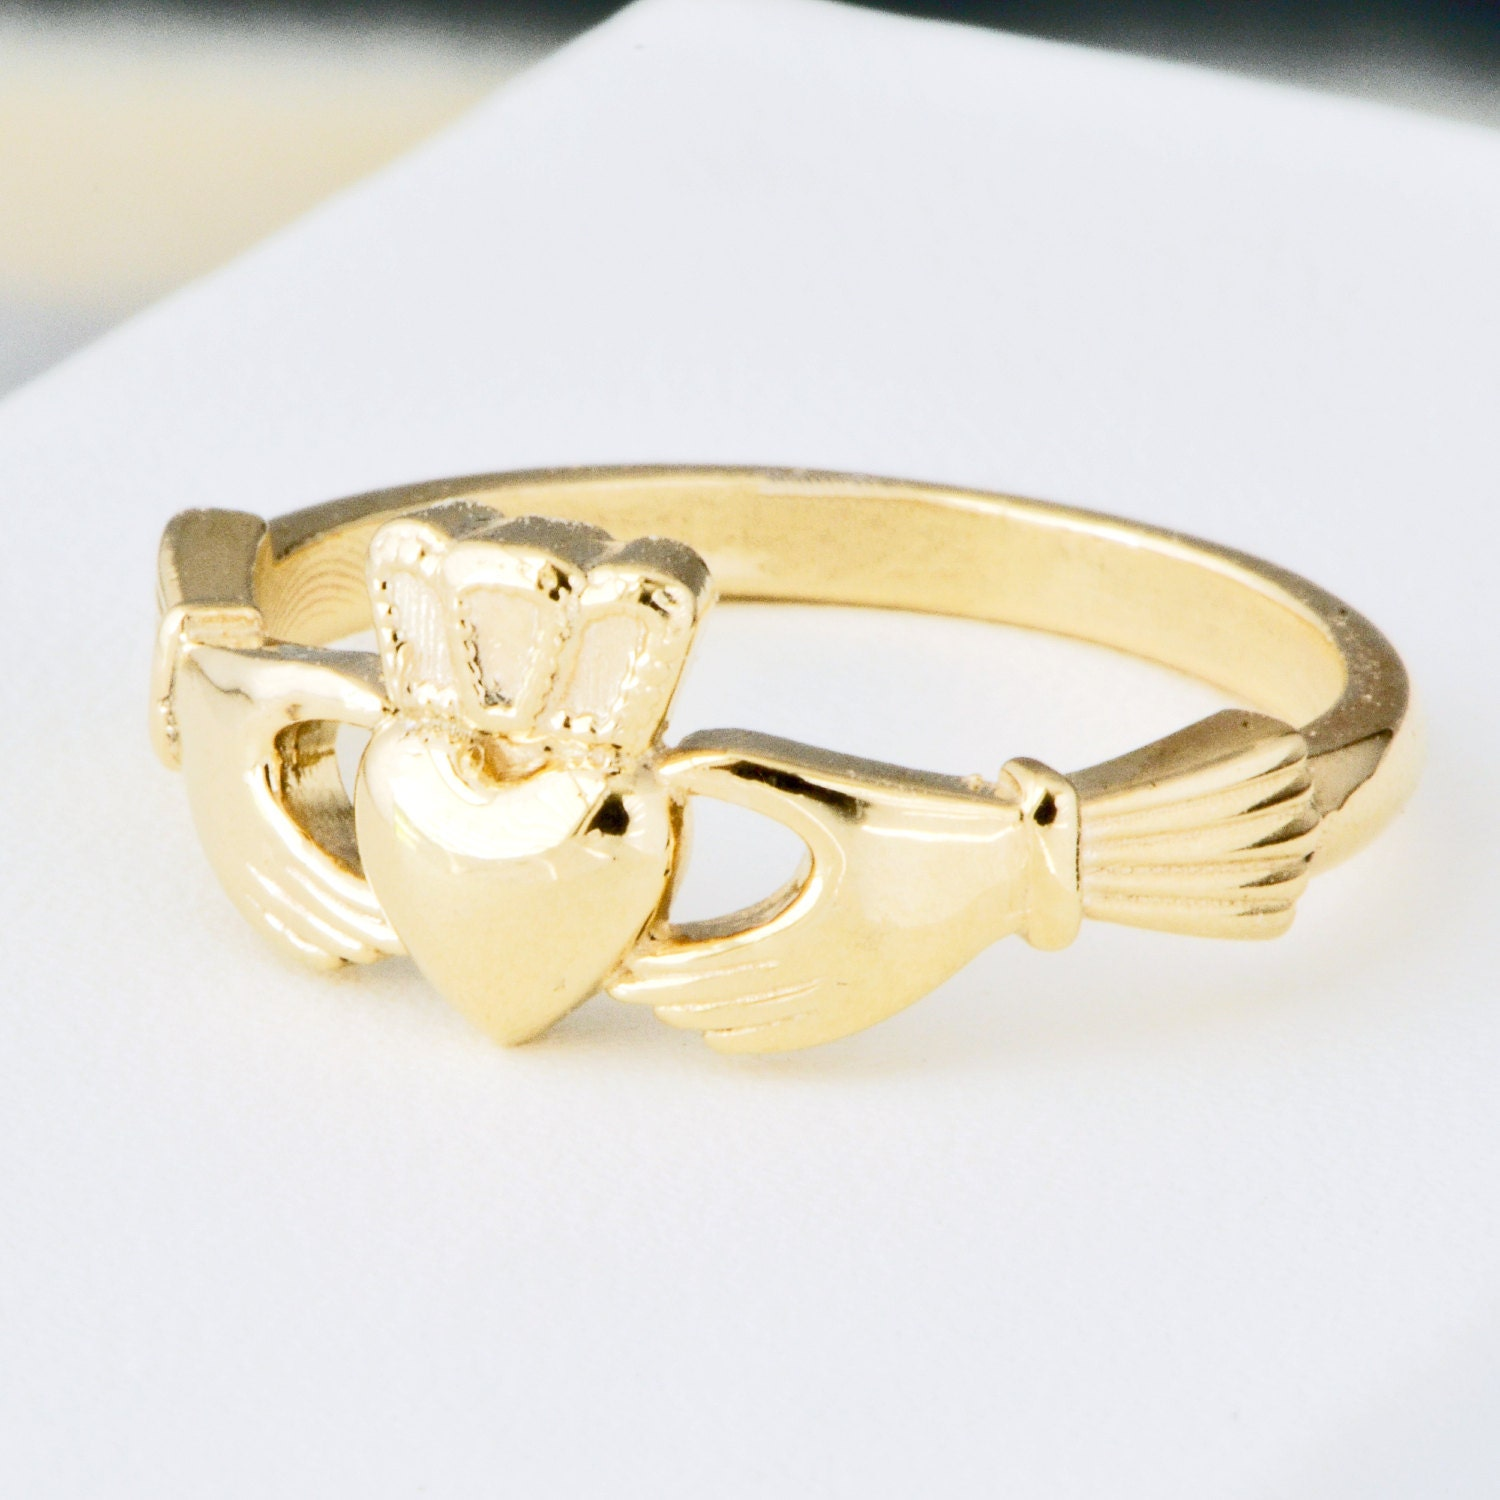 10K Yellow Gold Claddagh Ring Irish Wedding. Claddagh